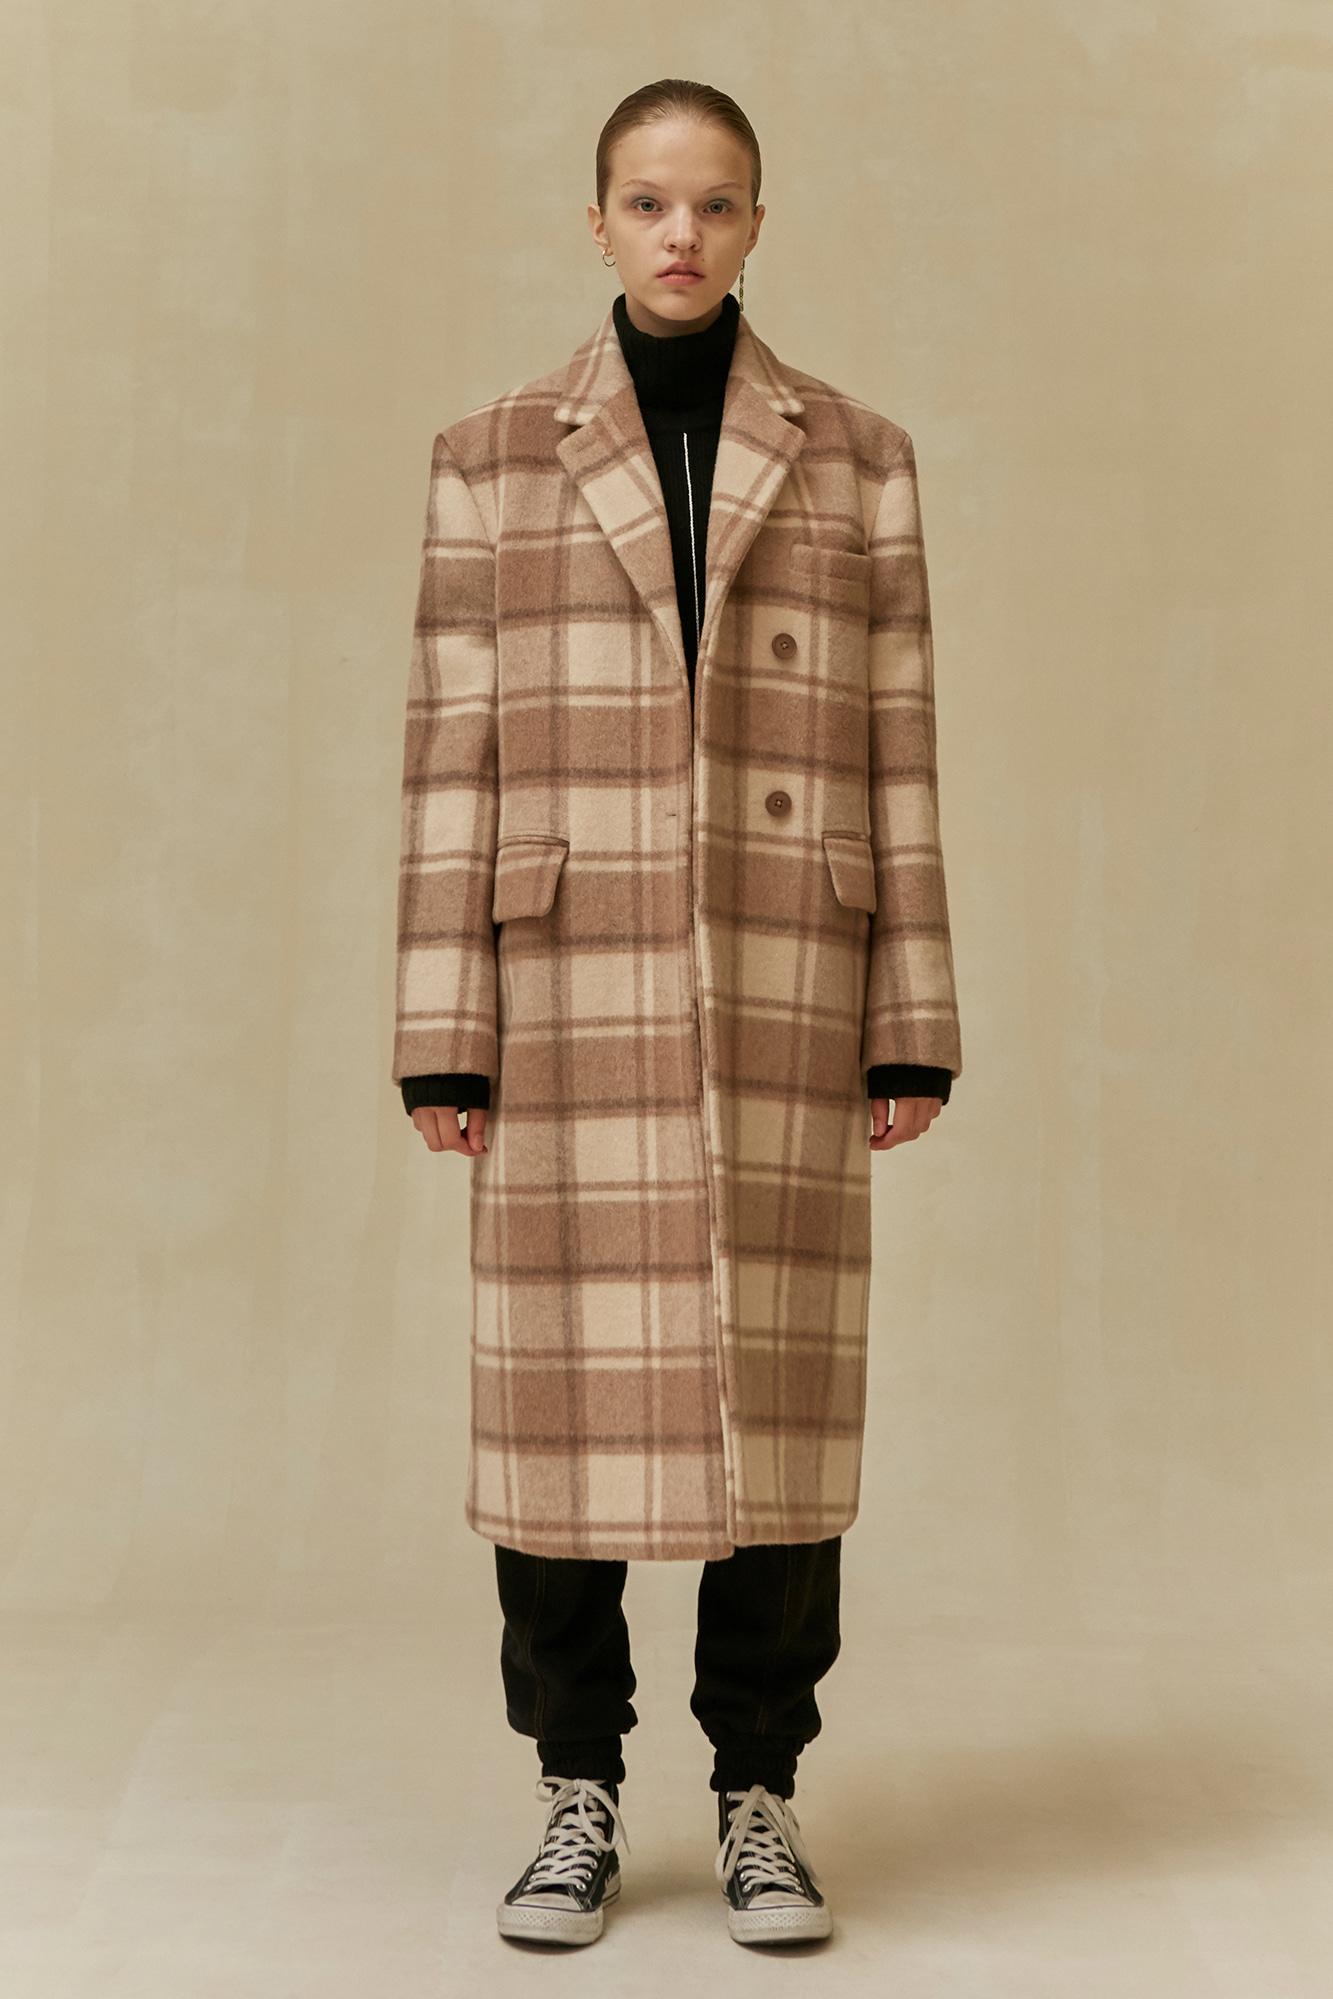 19 WINTER  LOCLE BASIC COAT - BEIGE CHECK